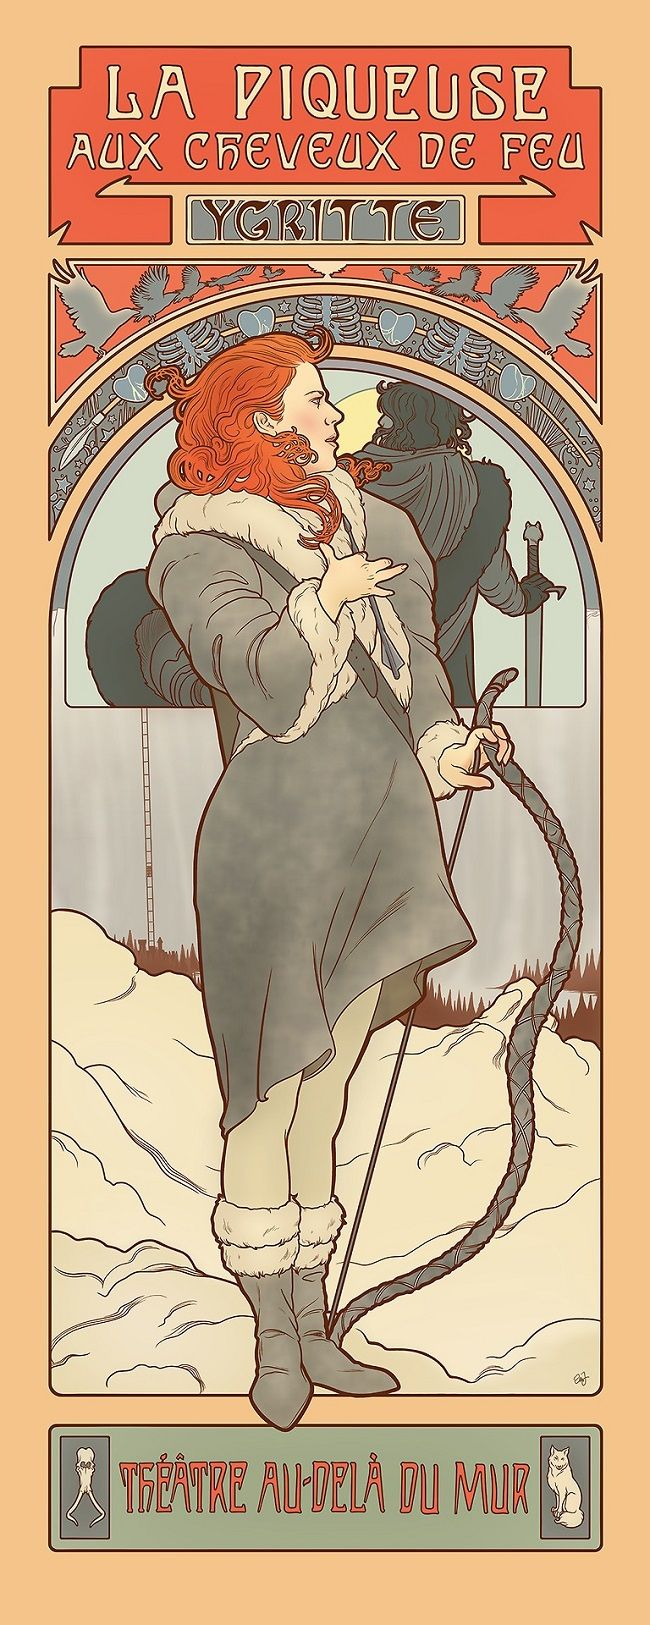 Ygritte - Elin Jonsson's Game of Thrones art nouveau illustrations in the style of Alphonse Mucha